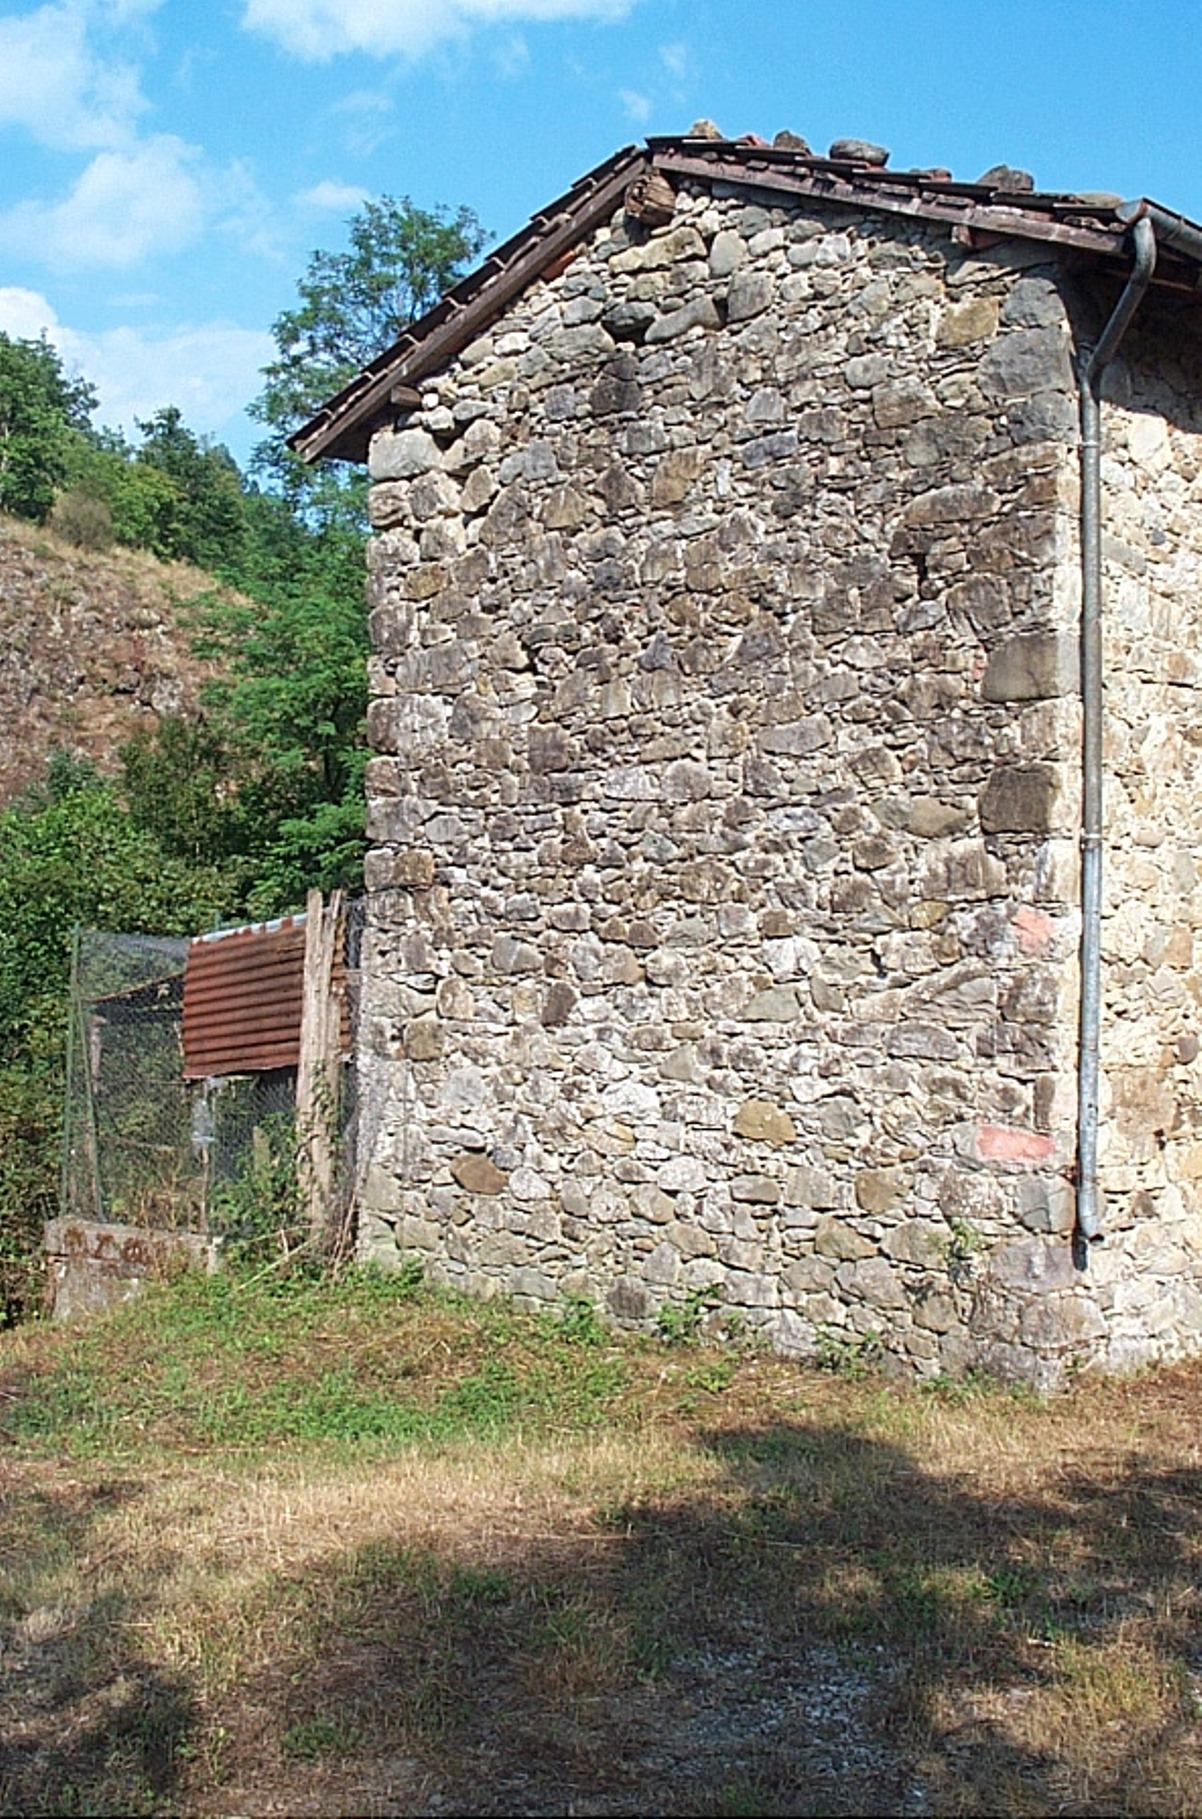 Build A Home for Under 50k Inspirational Lovely Rural Stone Building R214 Italy toscana Poggio